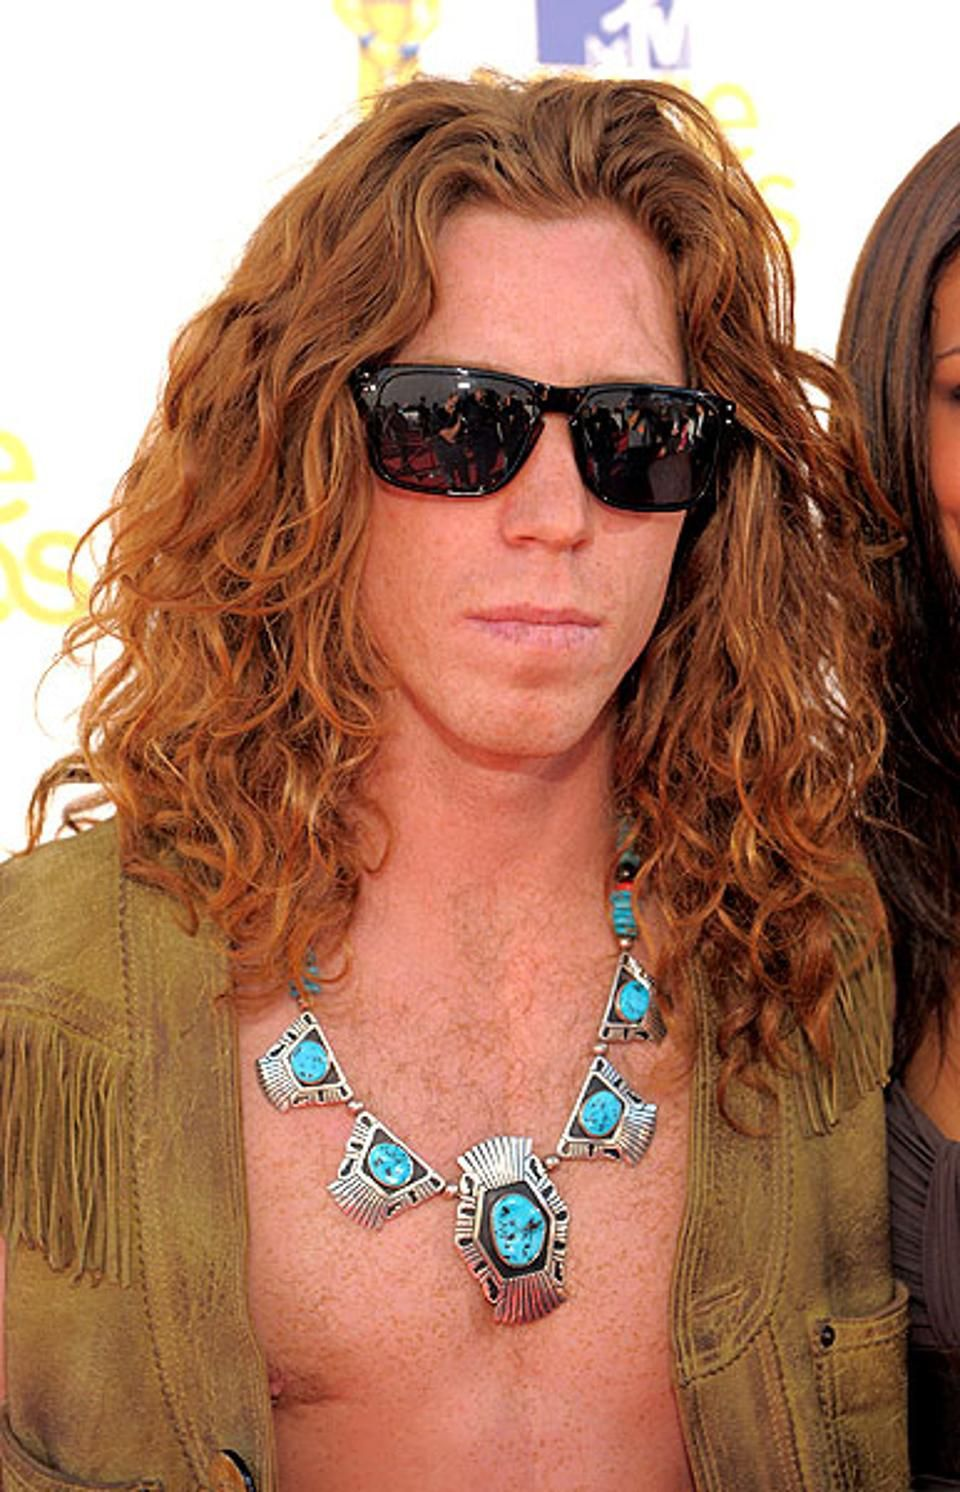 After Arrest Olympic Snowboarder Shaun White Apologizes For Unwise Choices Shaun White Shaun White Olympics Long Hair Styles